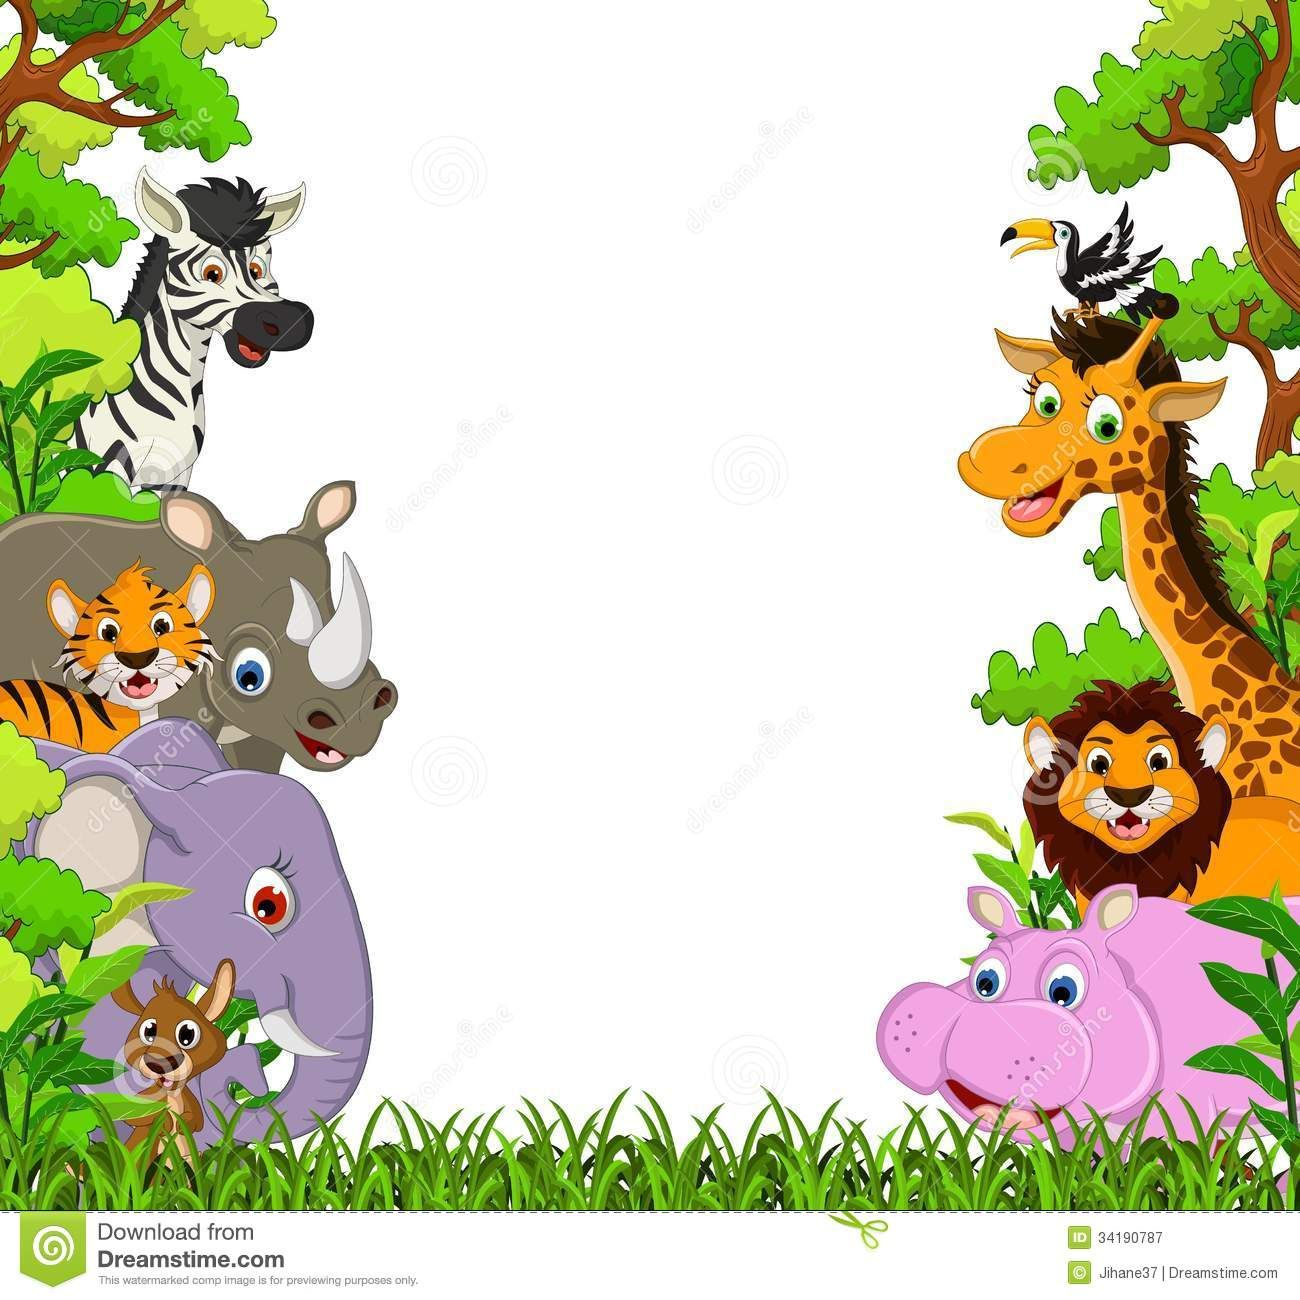 Free clipart animals cartoon graphic transparent download Image for Free Jungle Animal Clipart Cartoon Images Cute Animal ... graphic transparent download